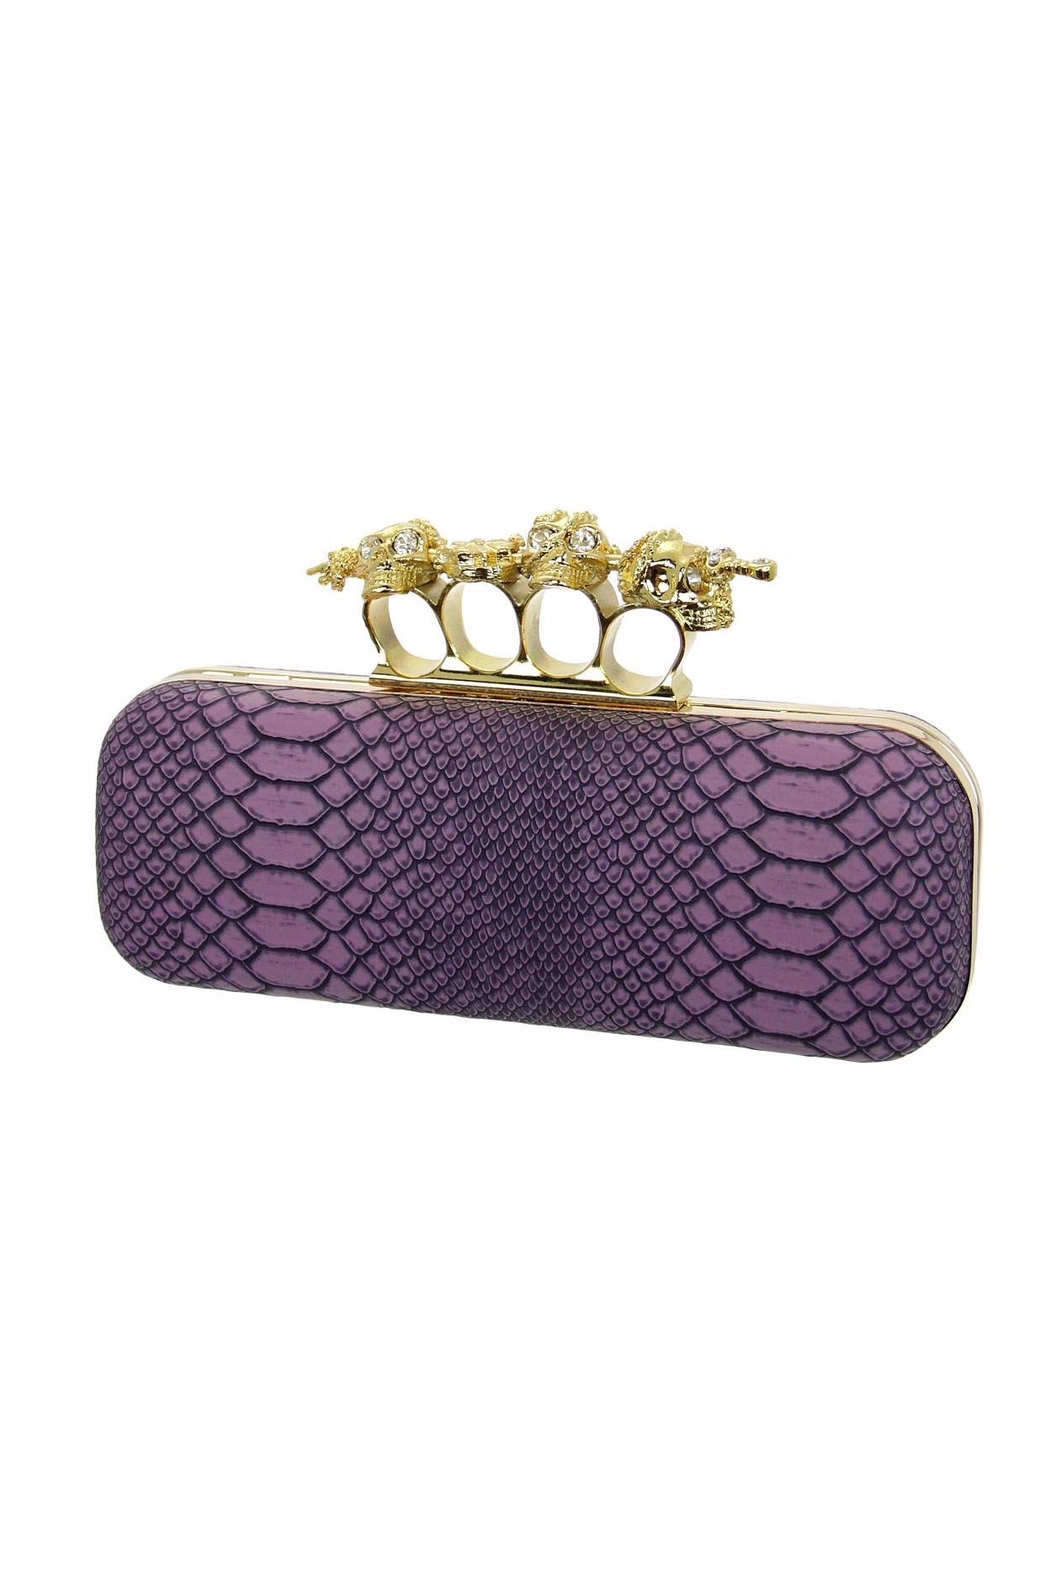 Diane's Accessories Lavender Snake Clutch - Main Image